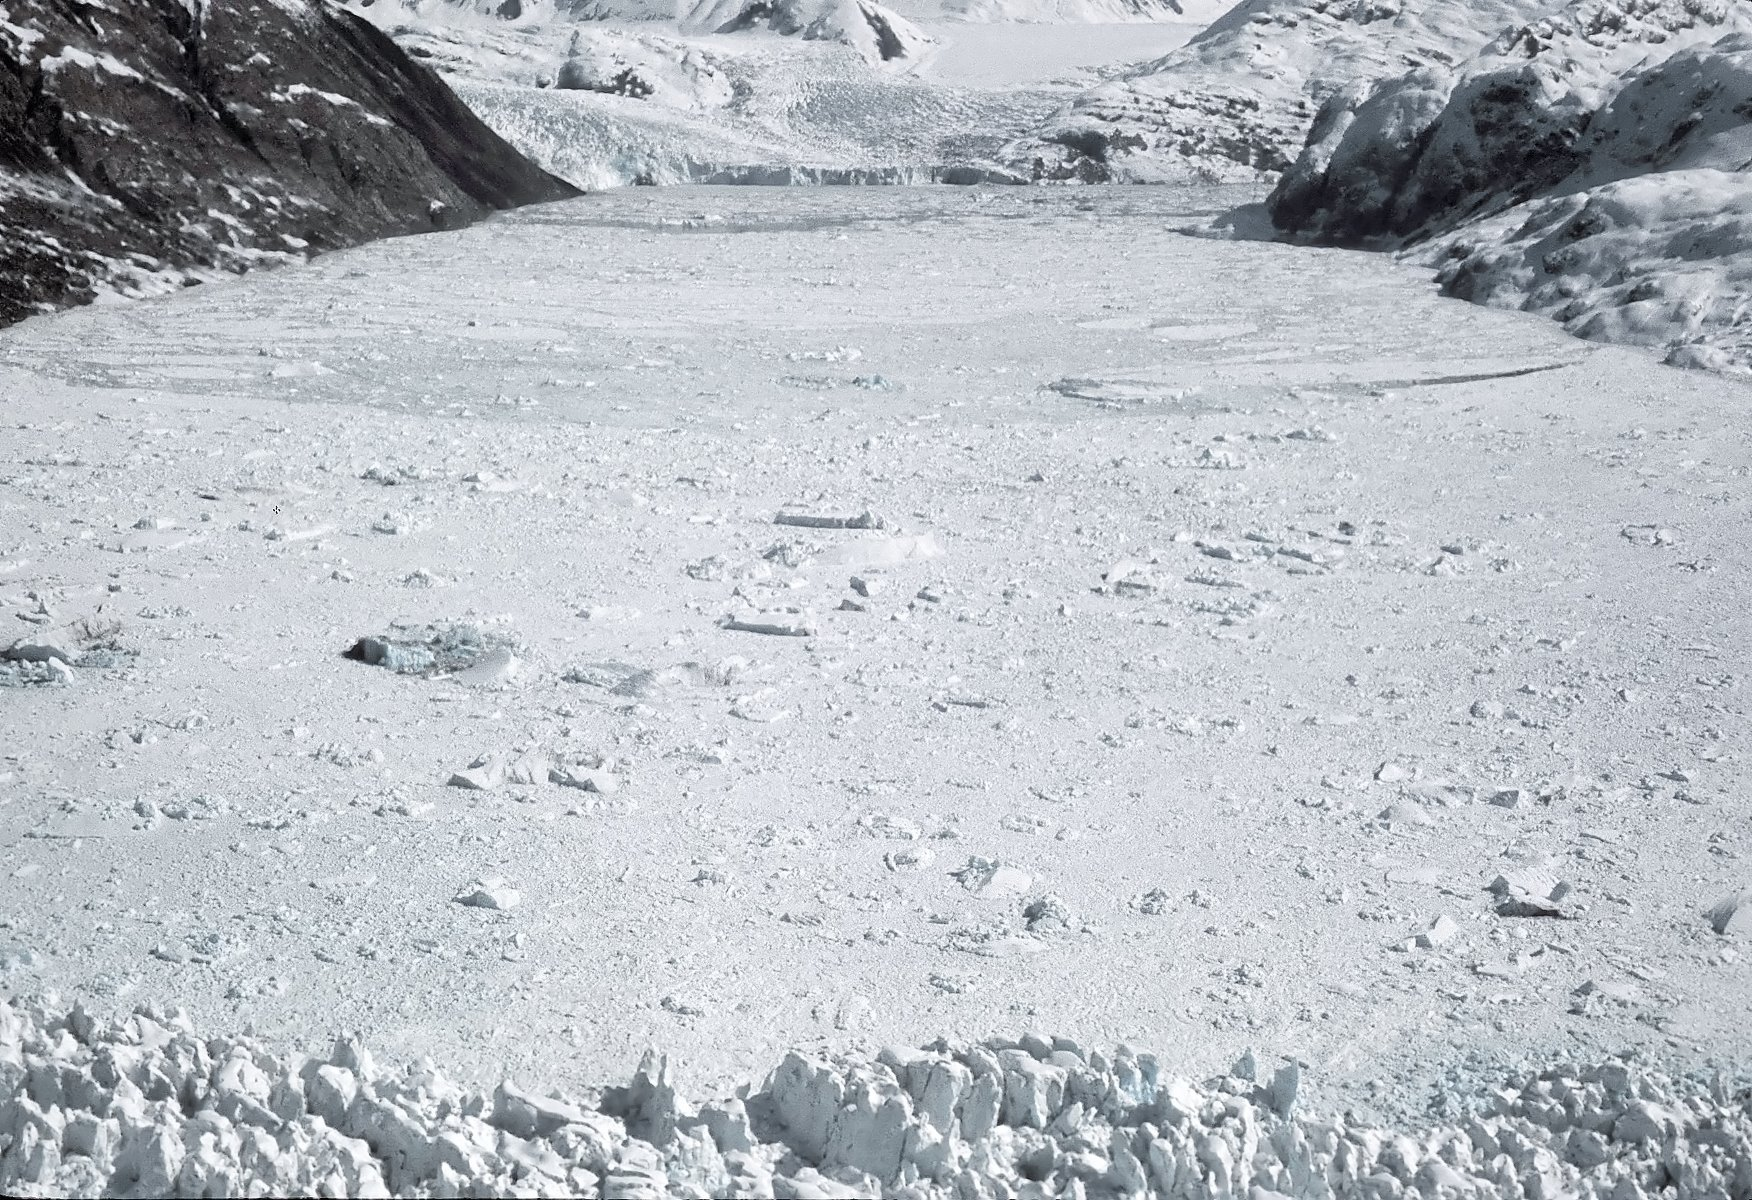 Aerial view from over Muir Glacier on April 11, 1968